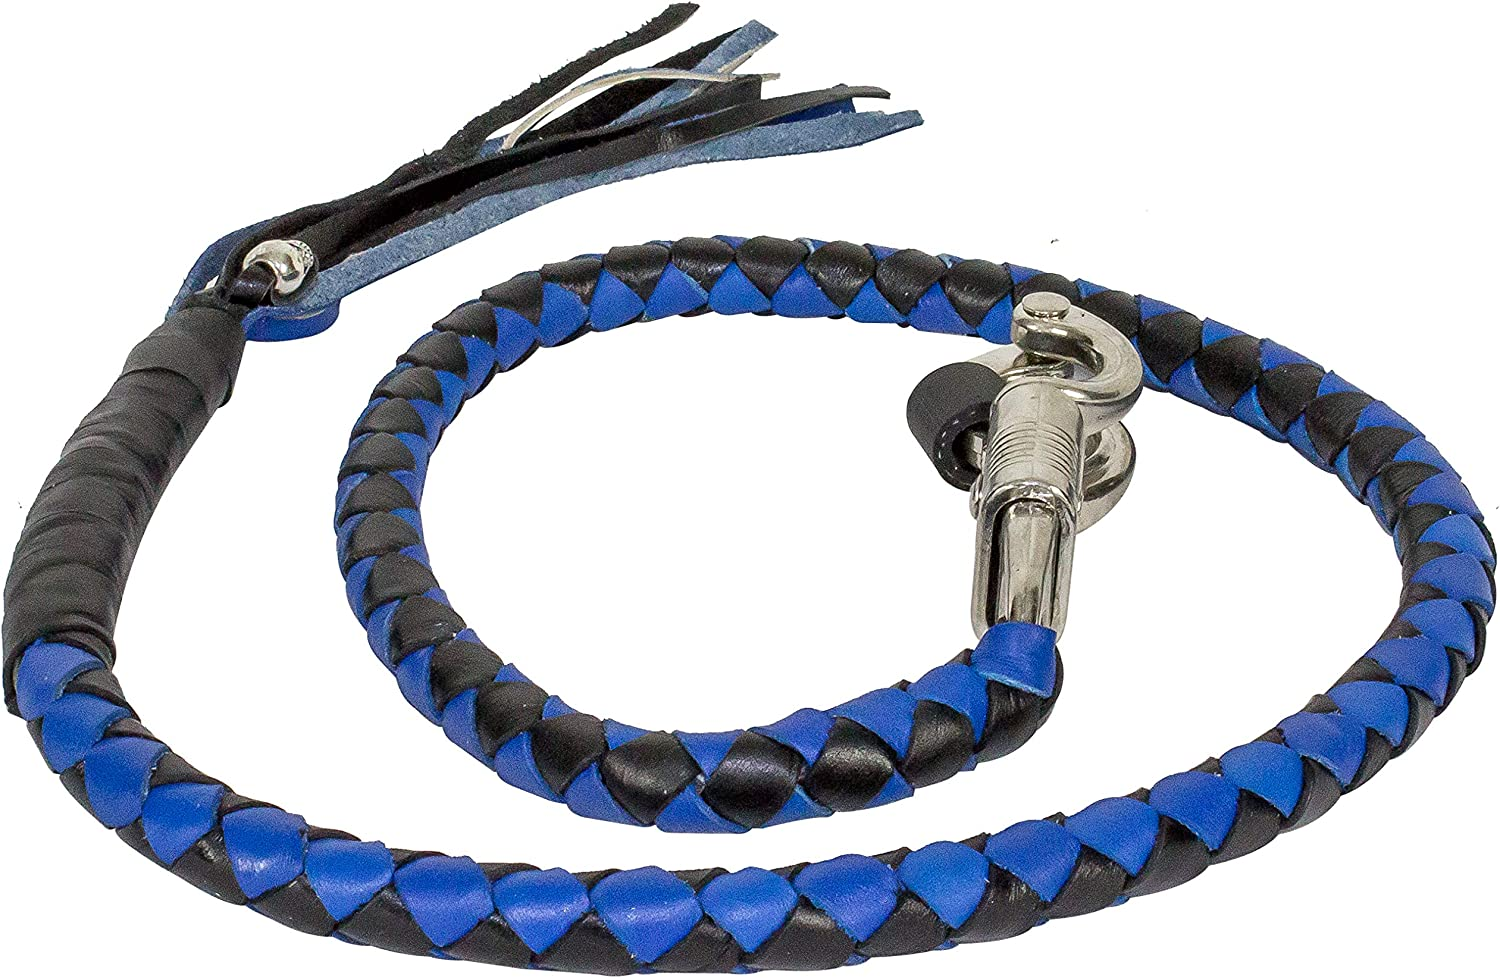 GBW2-11, Blue /& Black Get Back Whip for Motorcycles